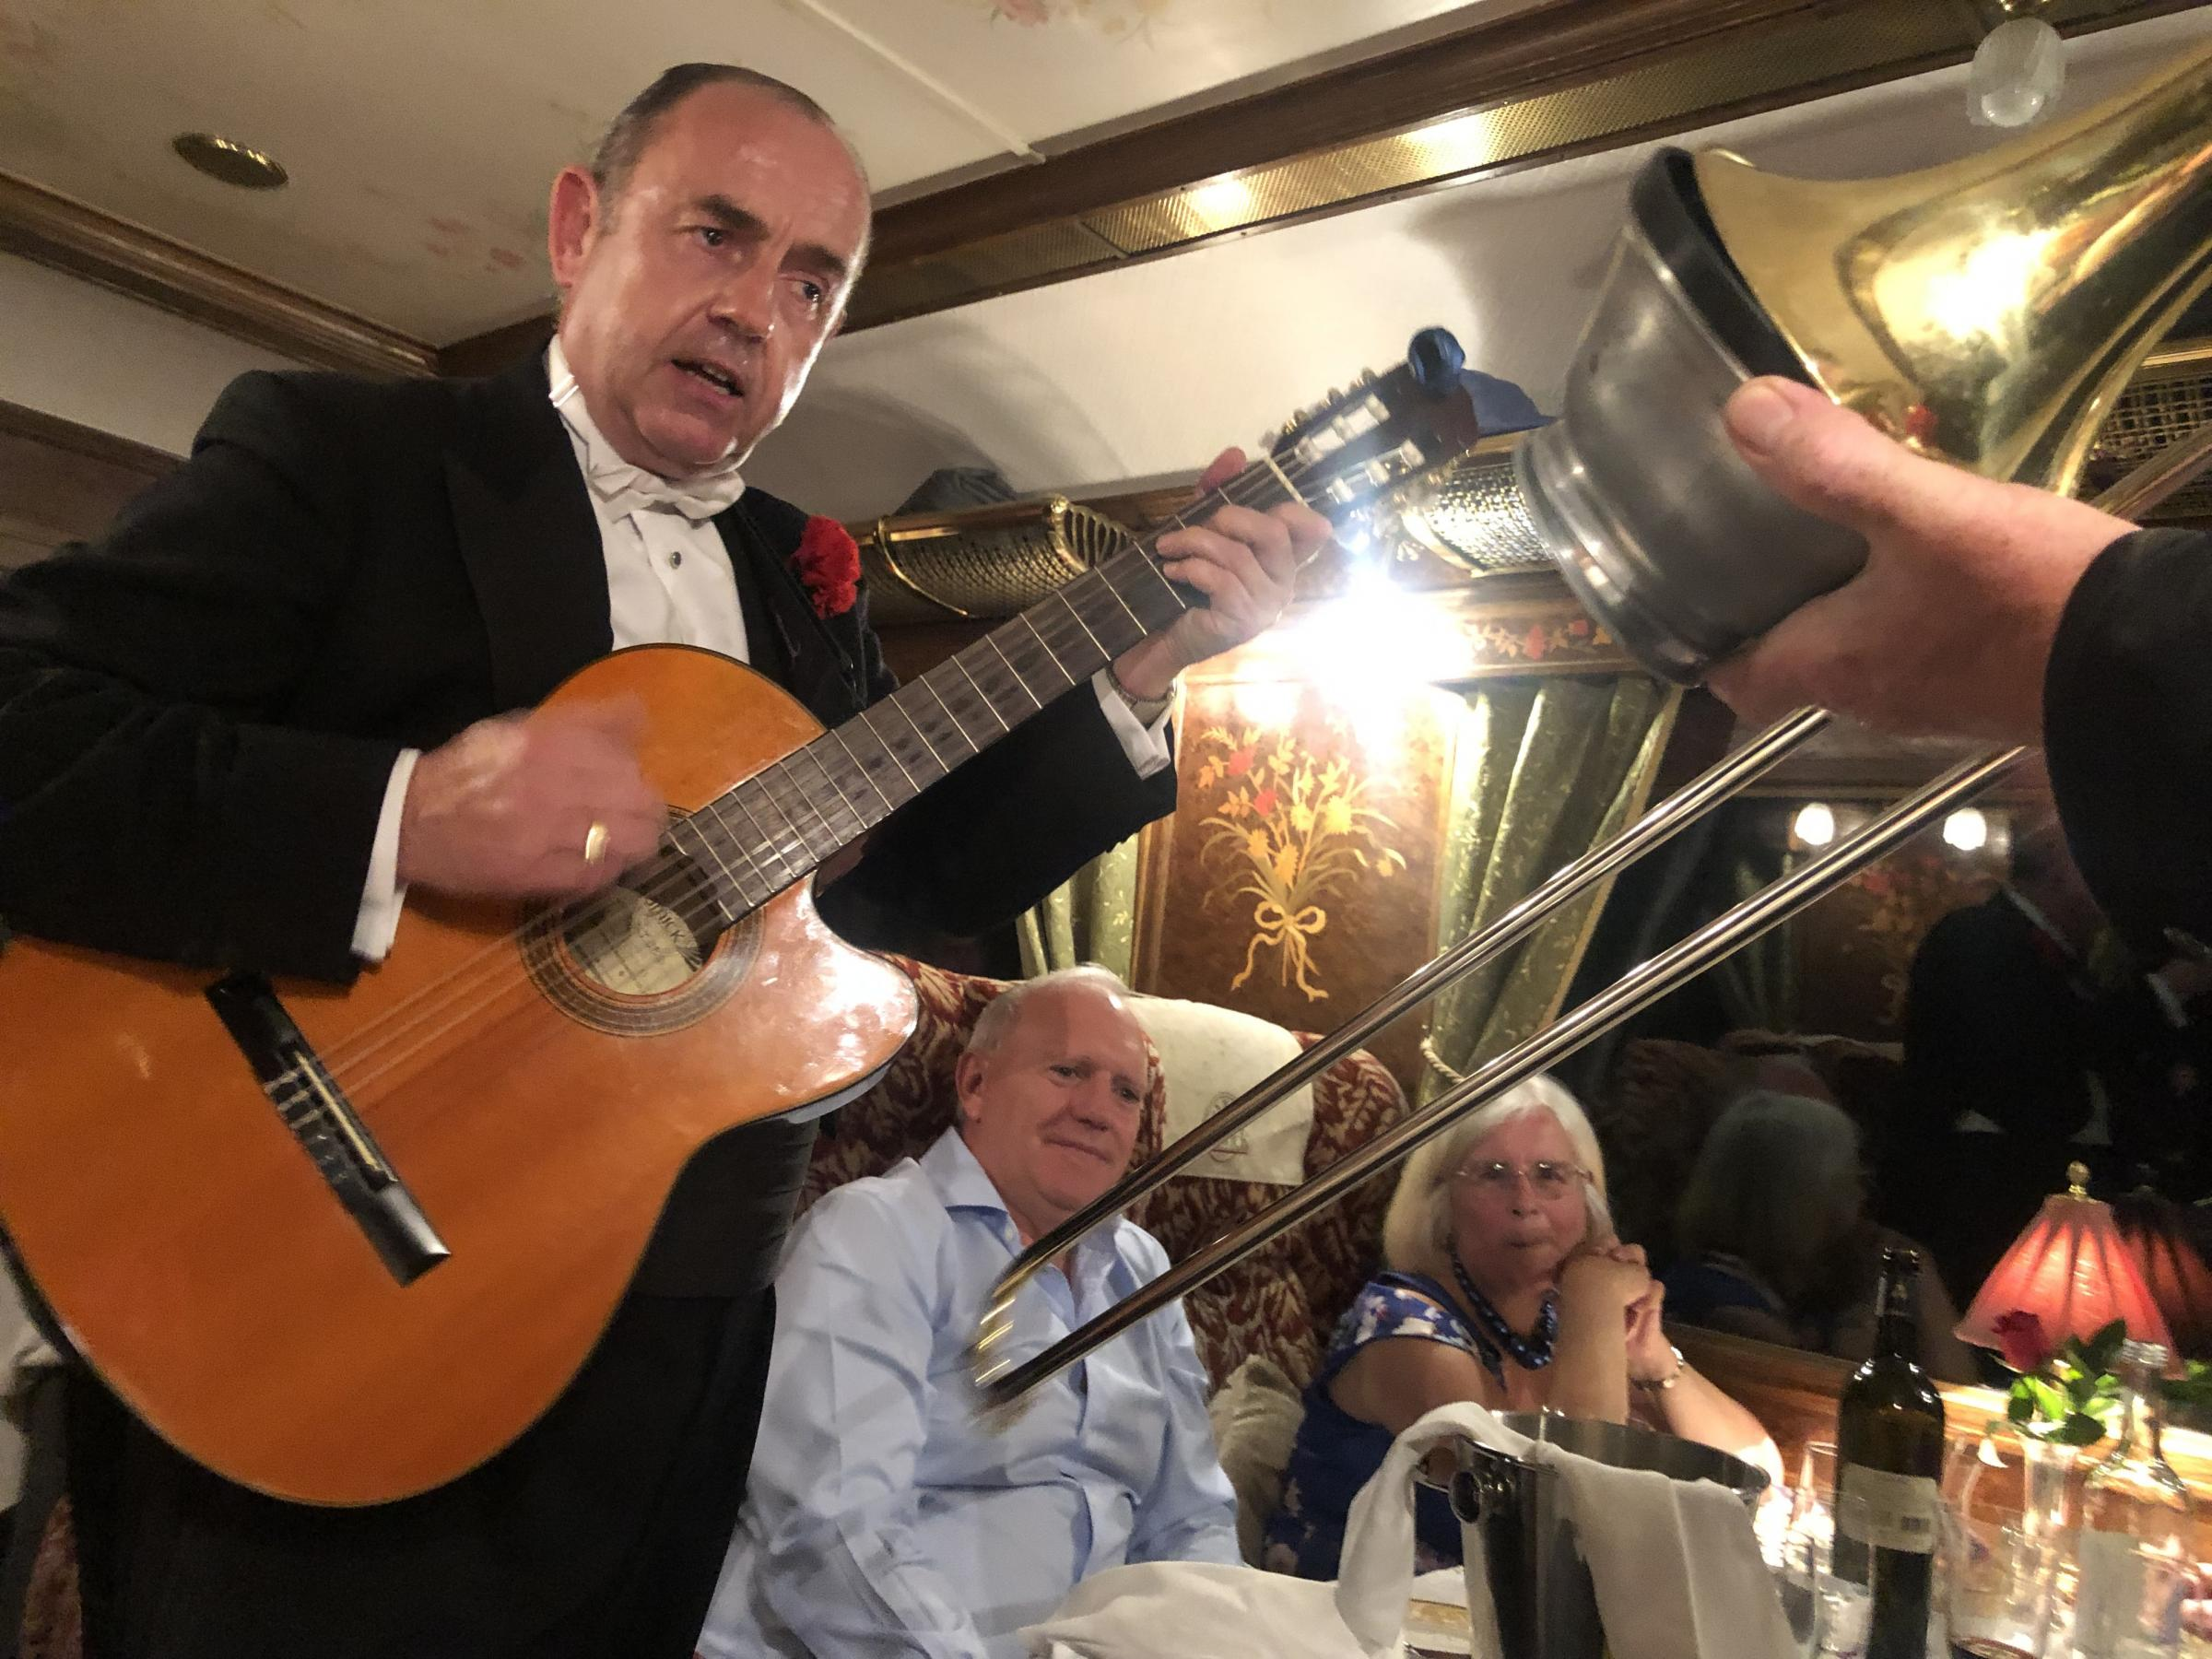 Rhythm of the train. The Northern Belles resident musicians